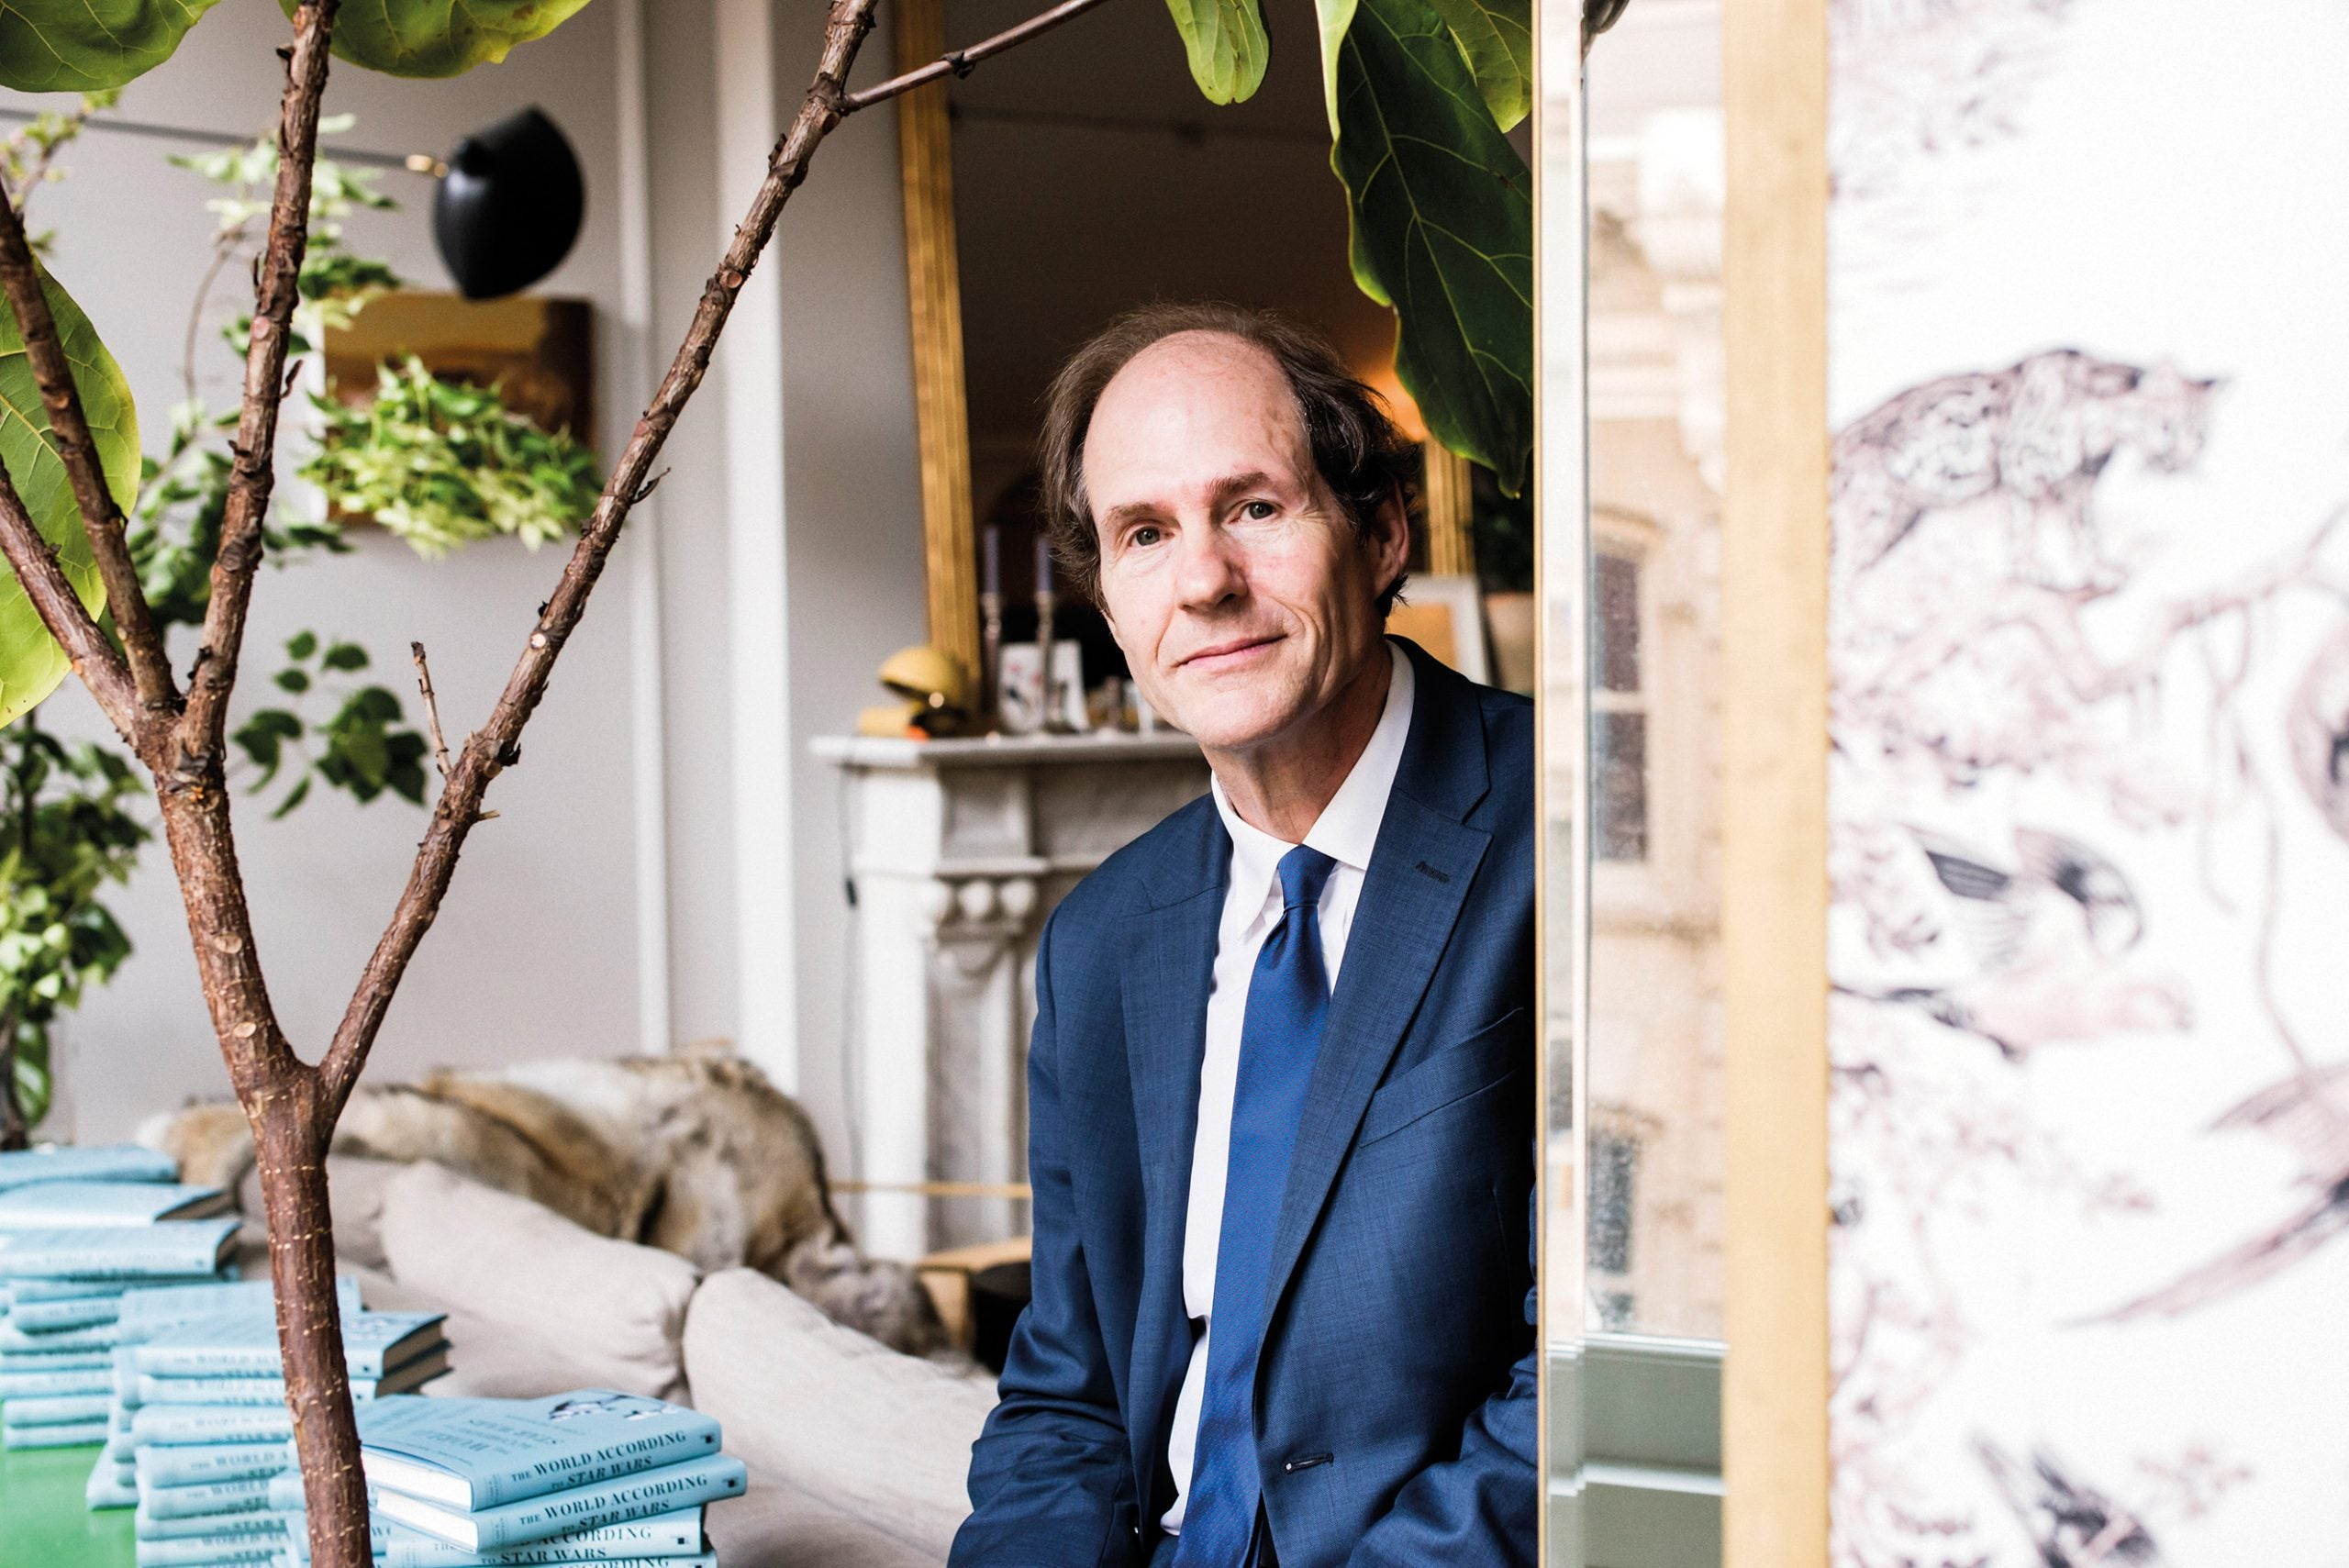 Cass Sunstein and the rise and fall of nudge theory